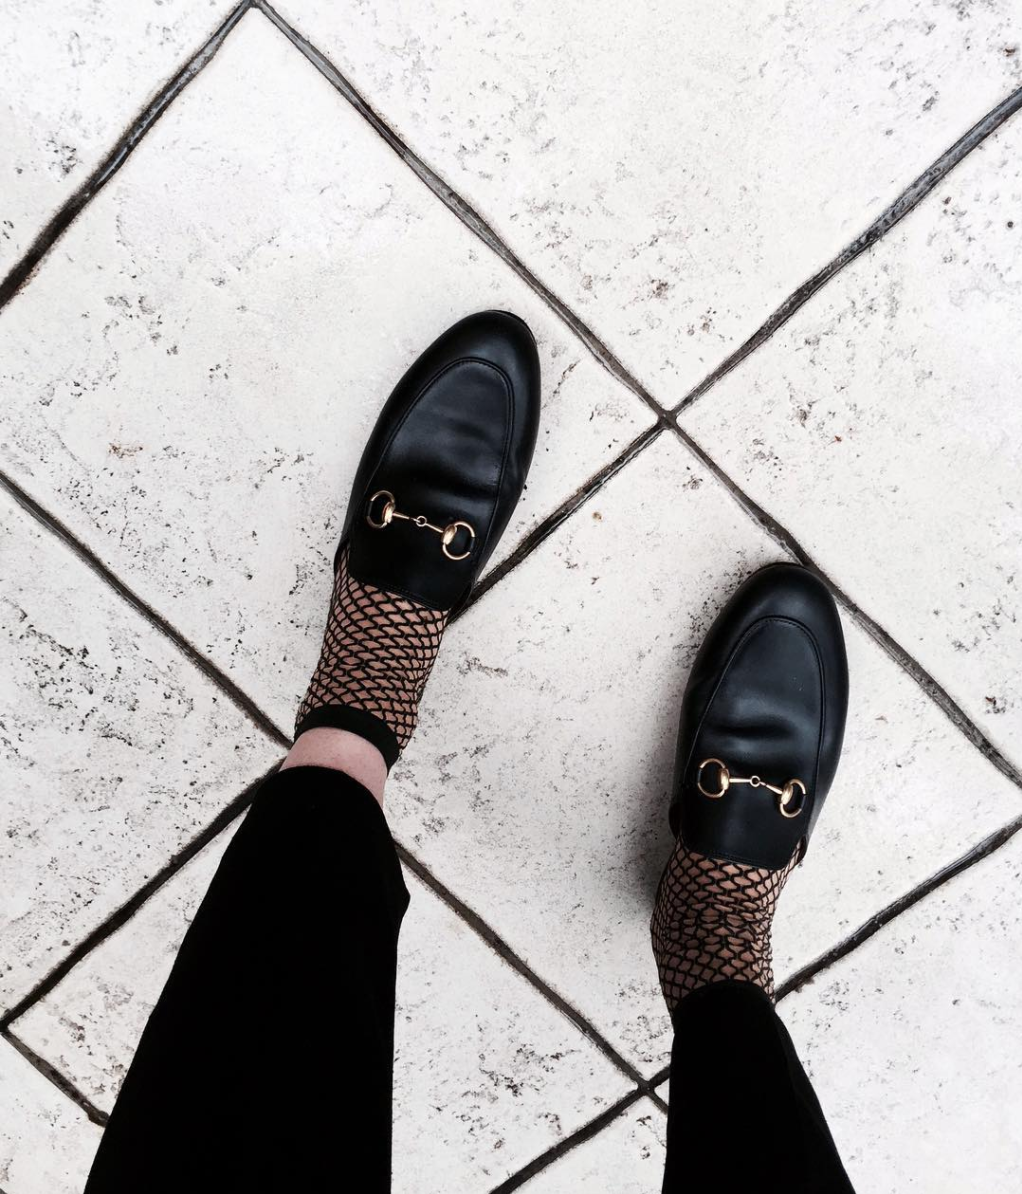 Fishnets and the classic Gucci loafers. By the way, Fishnets Are Back: Here are 18 Chic Ways to Wear Them. | glitterinc.com | @glitterinc